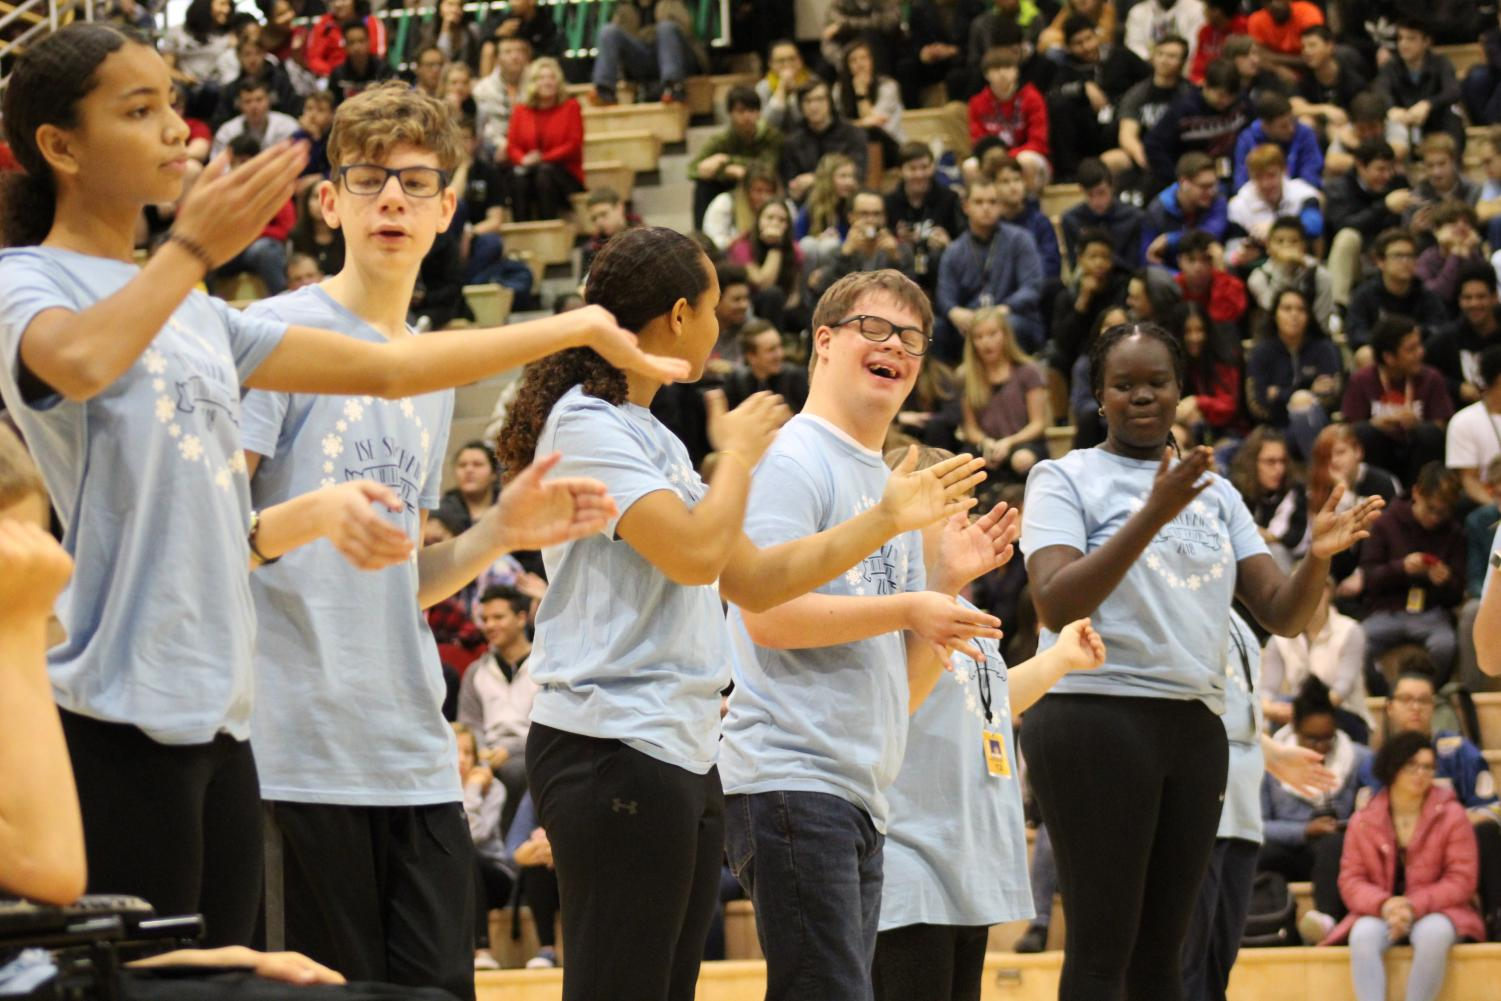 Step Chain performs at the Winter Pep Rally on Dec. 4, 2018.